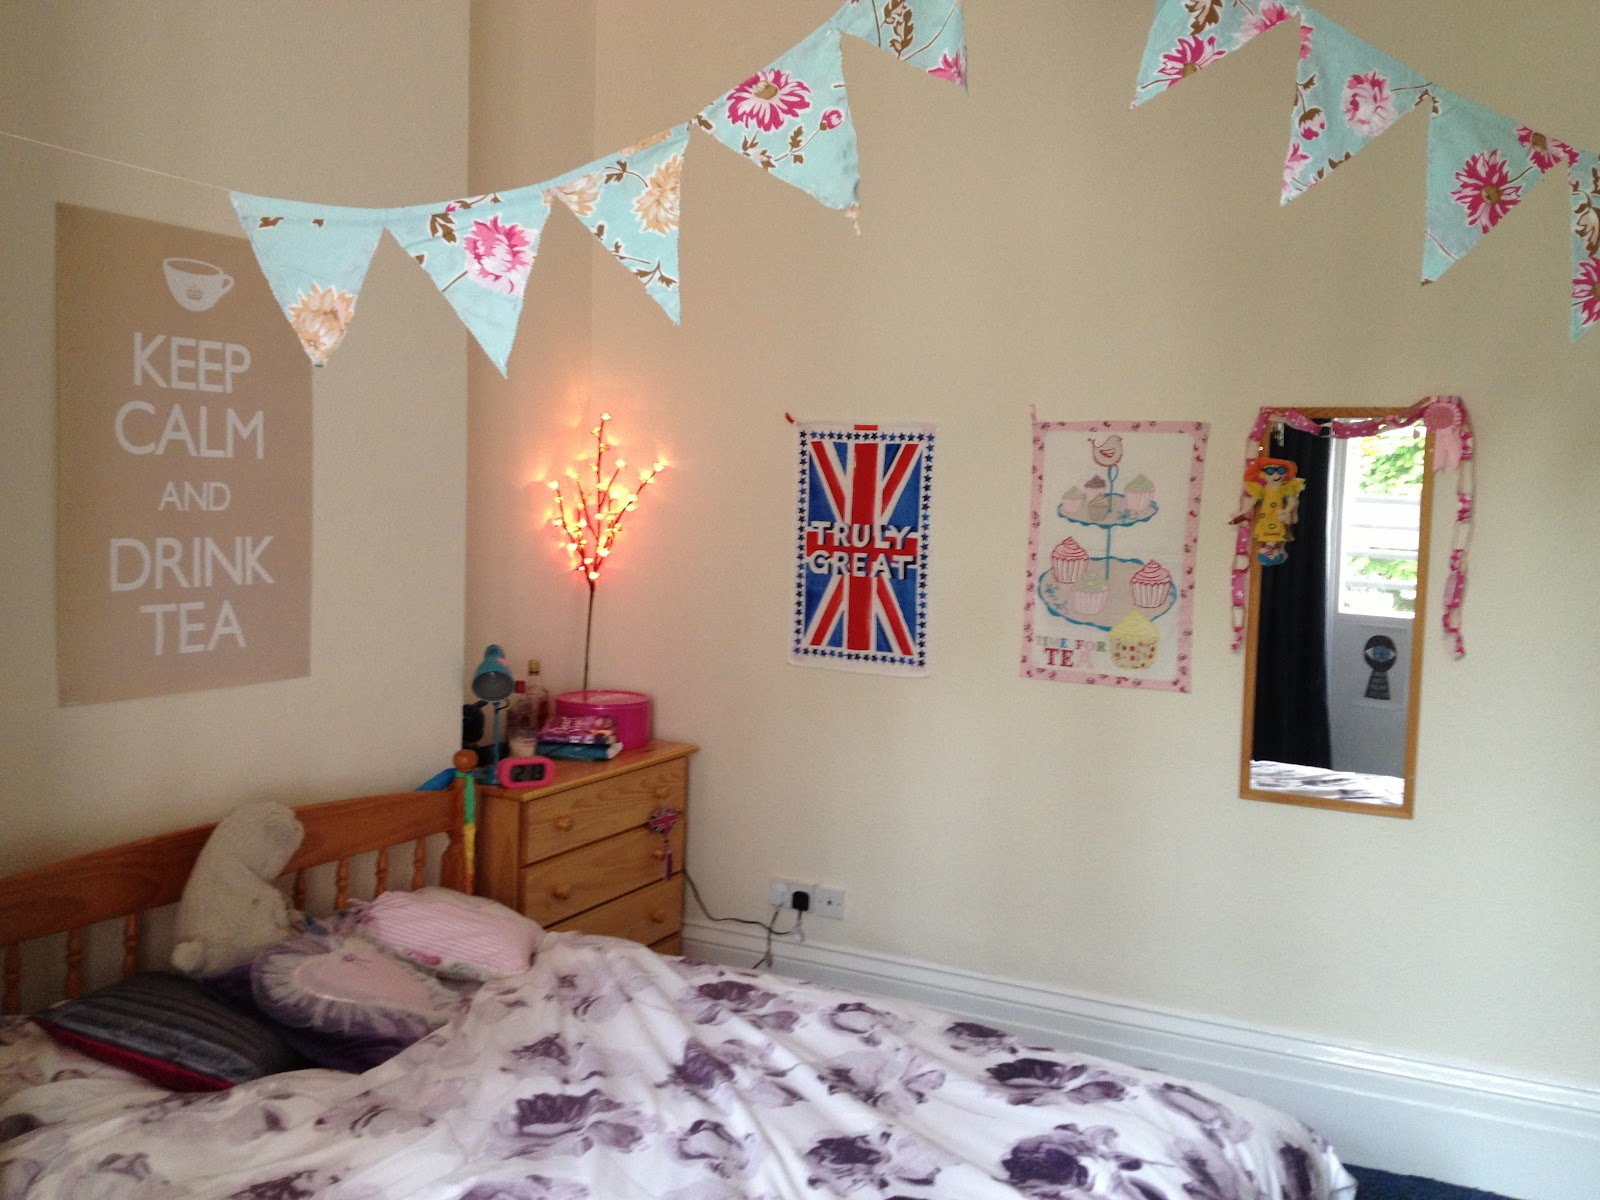 The twenty best ways to decorate your student room at uni for Decorating my bedroom ideas